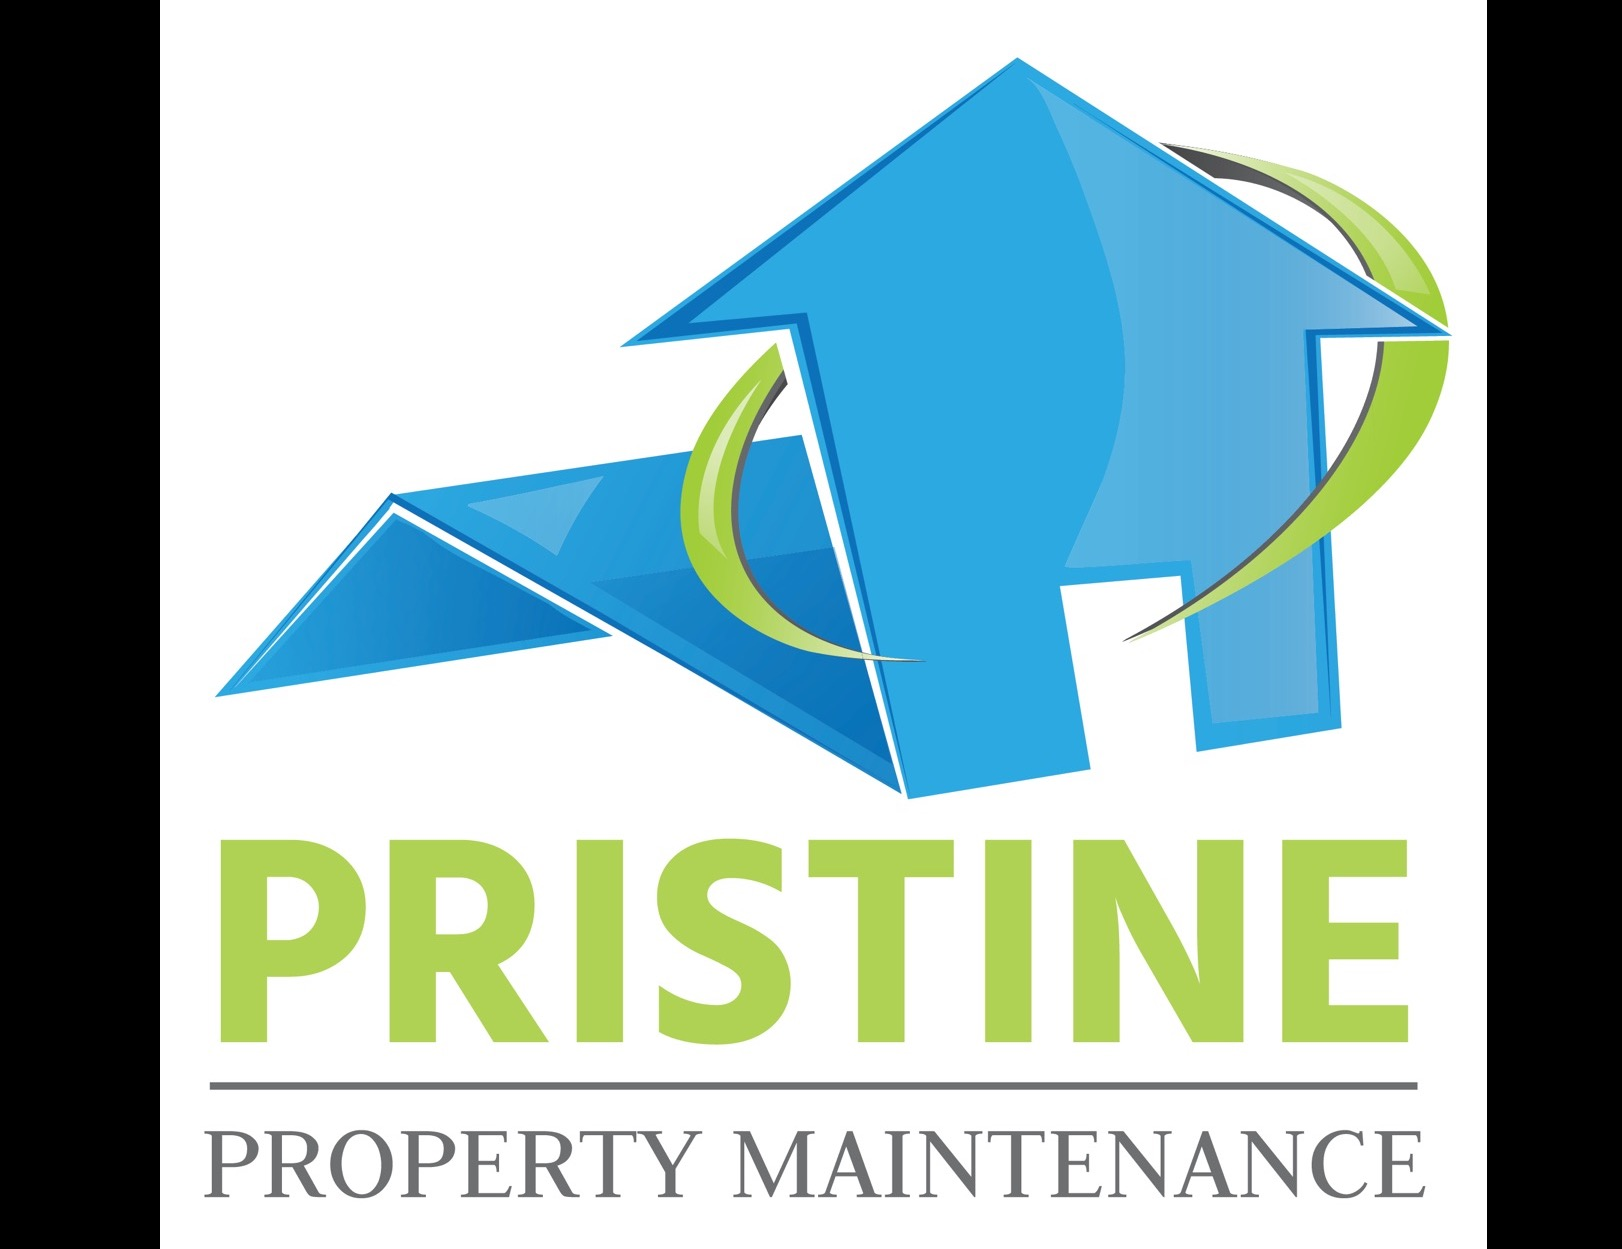 Pristine Property Maintenance 2015 Limited